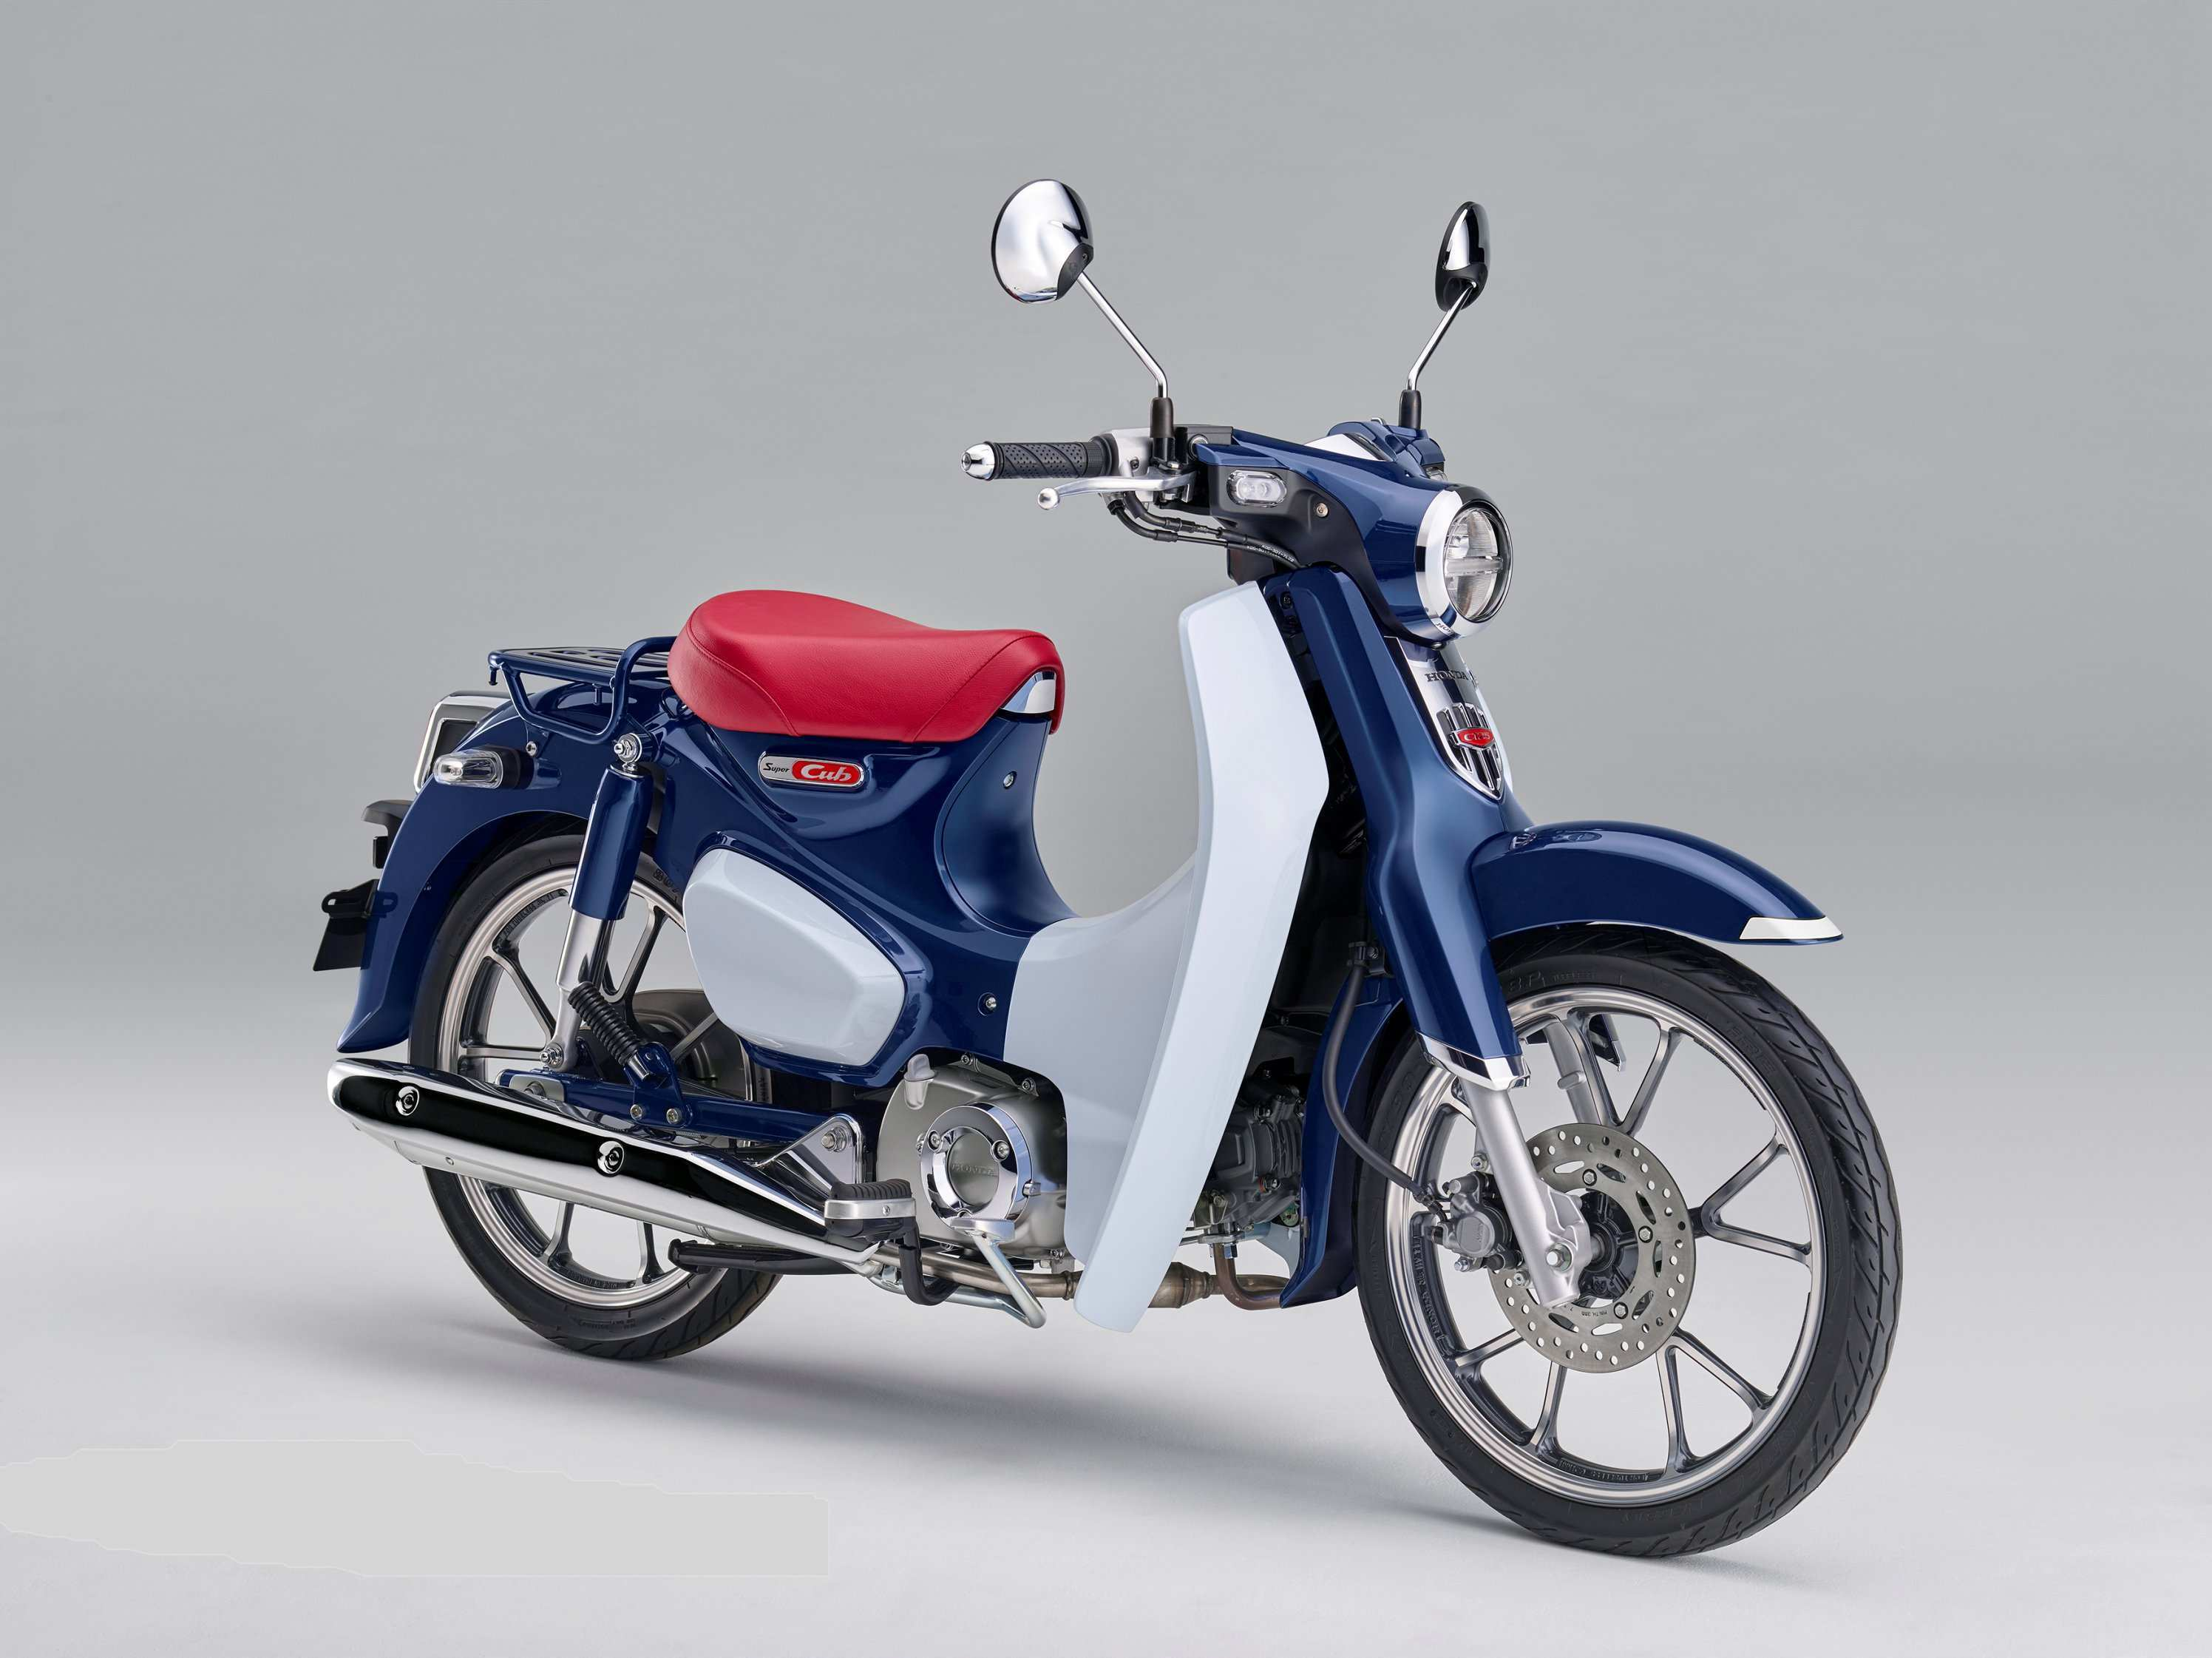 53 Best Review 2019 Honda Super Cub Top Speed Price by 2019 Honda Super Cub Top Speed